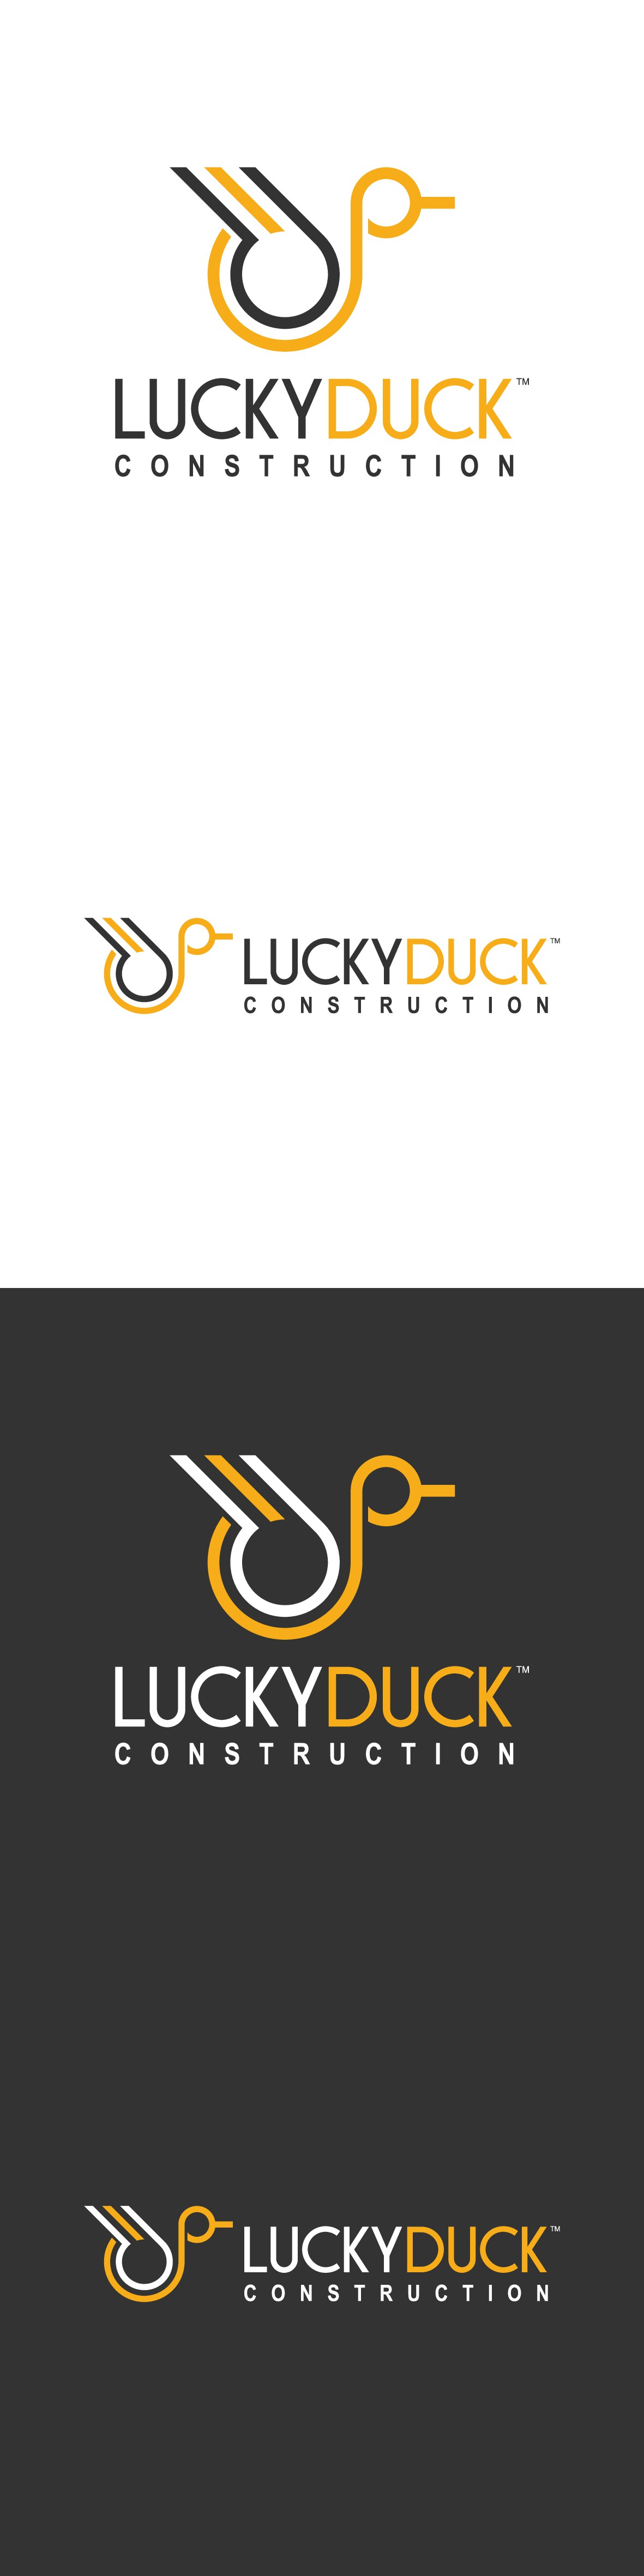 Construction Company : Pitch-Deck Formatting and Logo Redesign